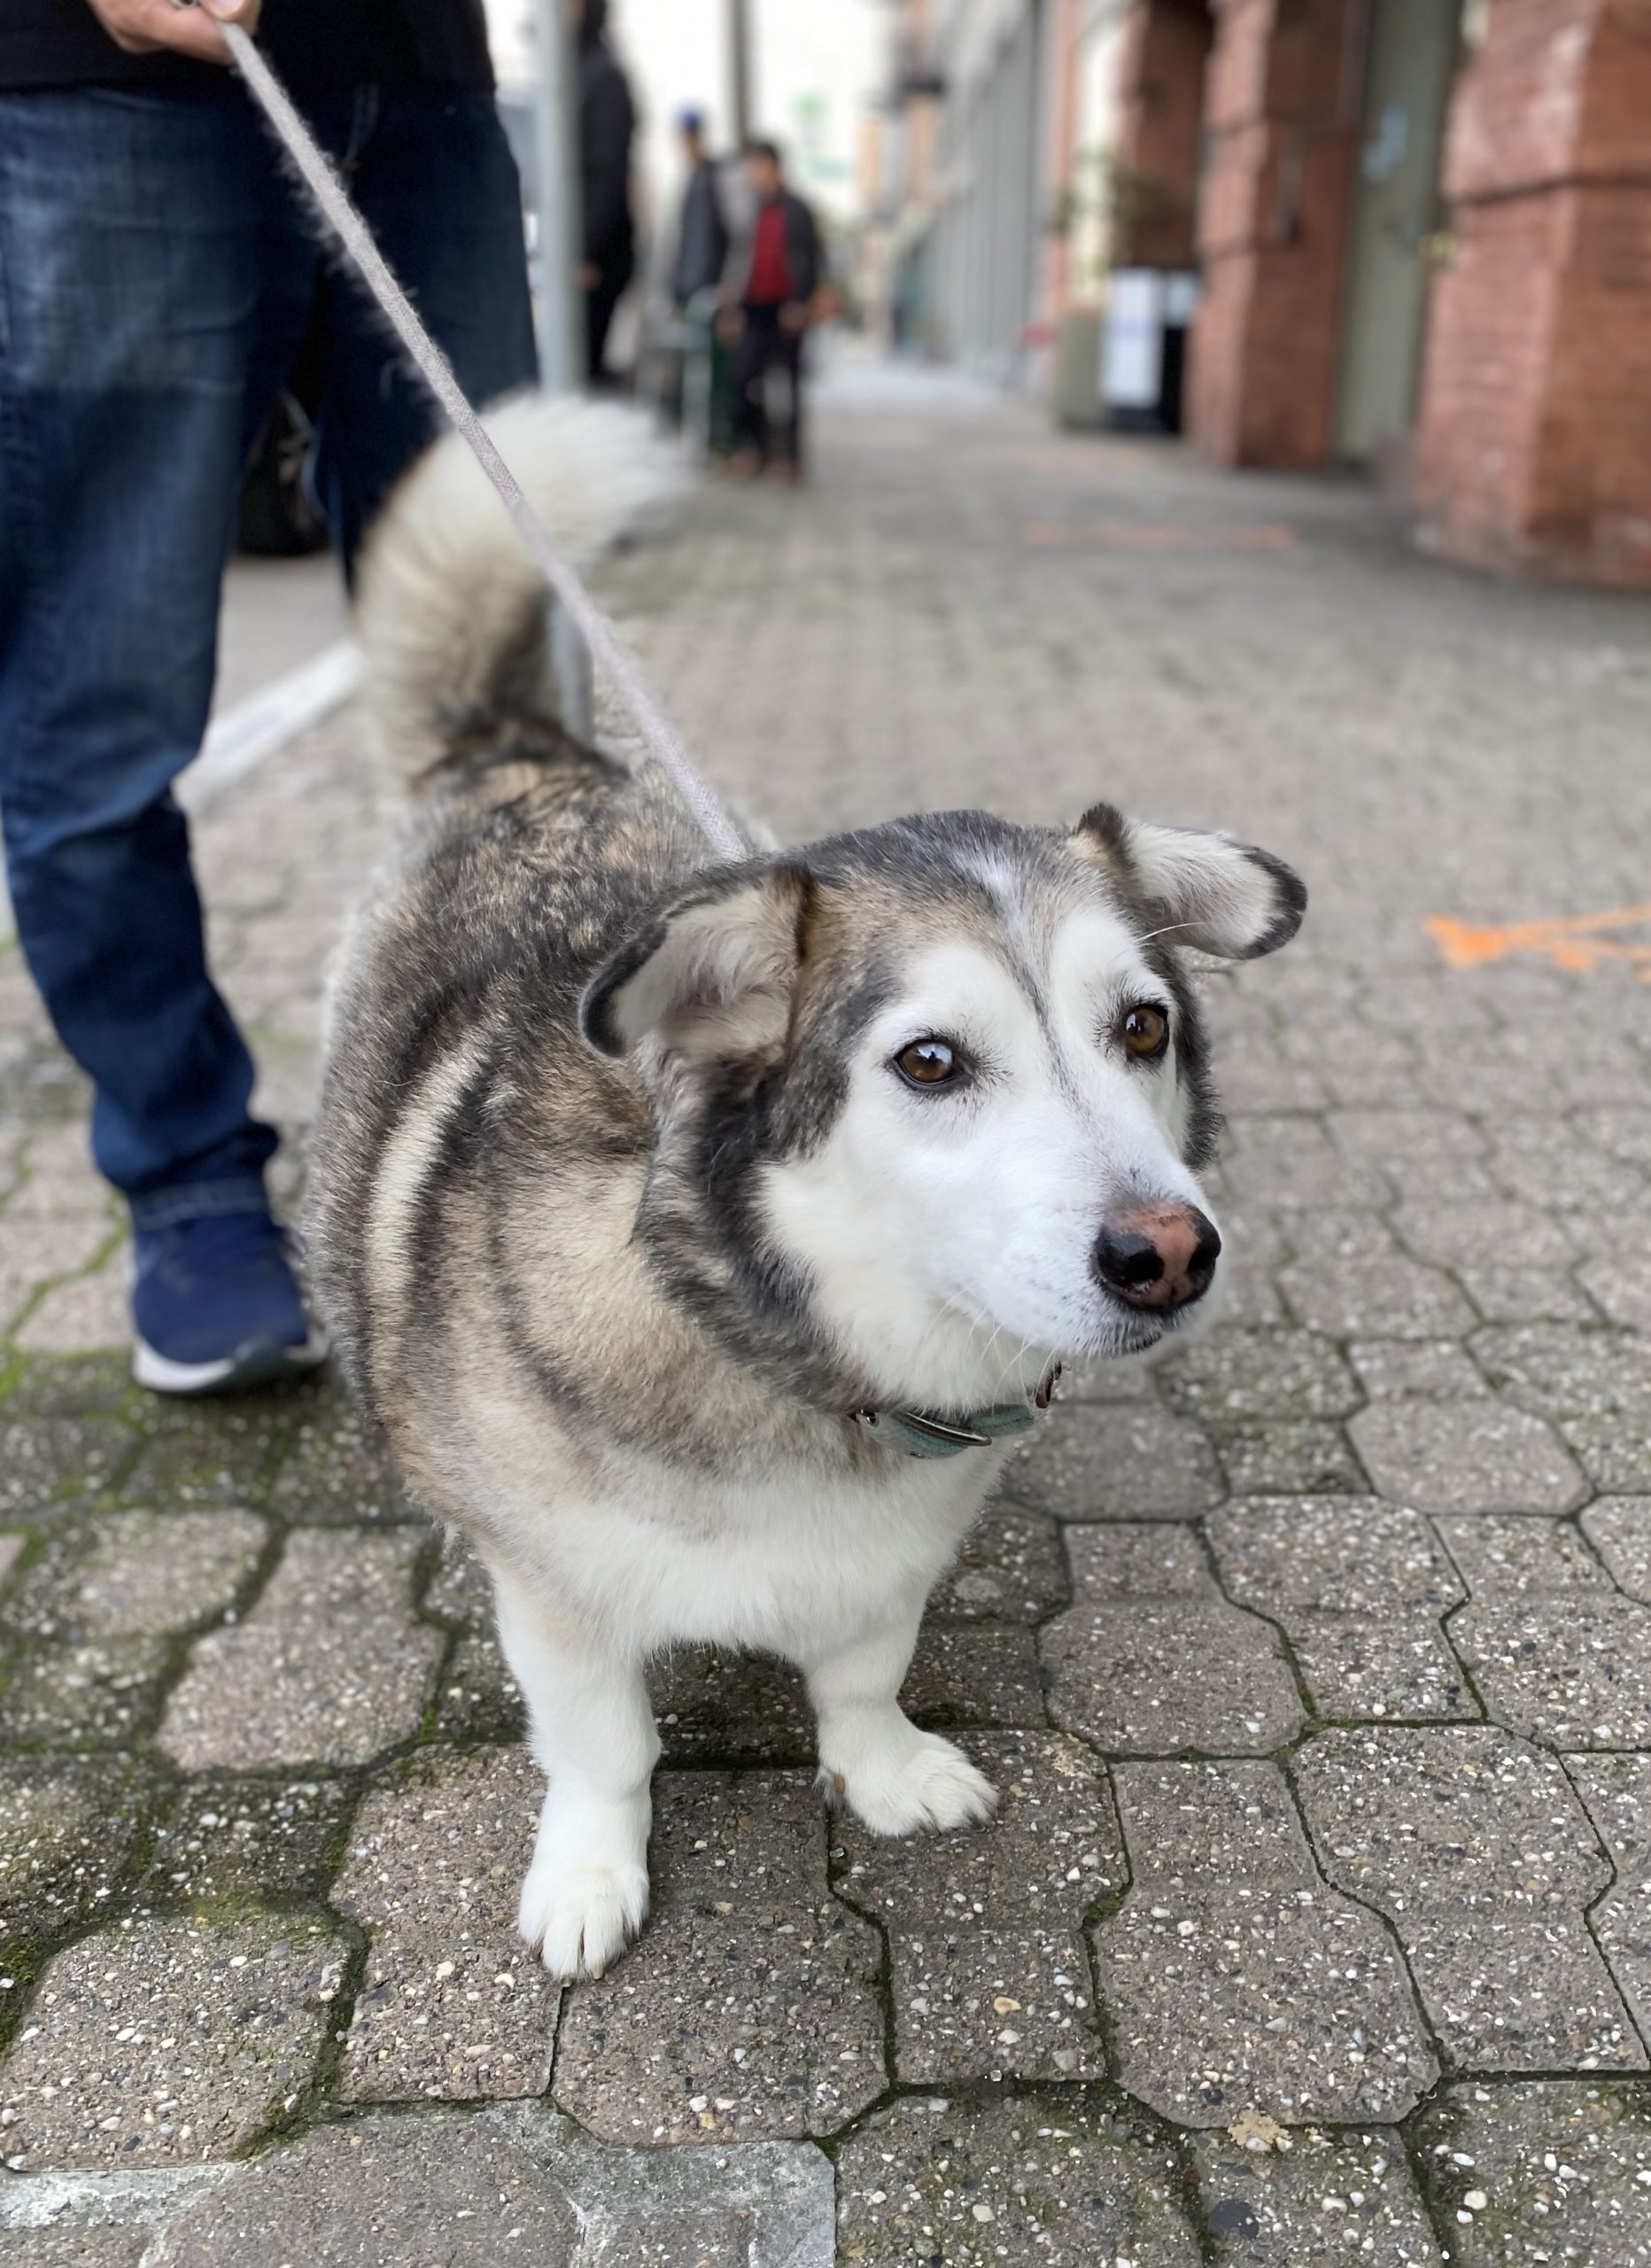 Pembroke Welsh Corgi Siberian Husky Mix Maybe With Half Floppy Ears